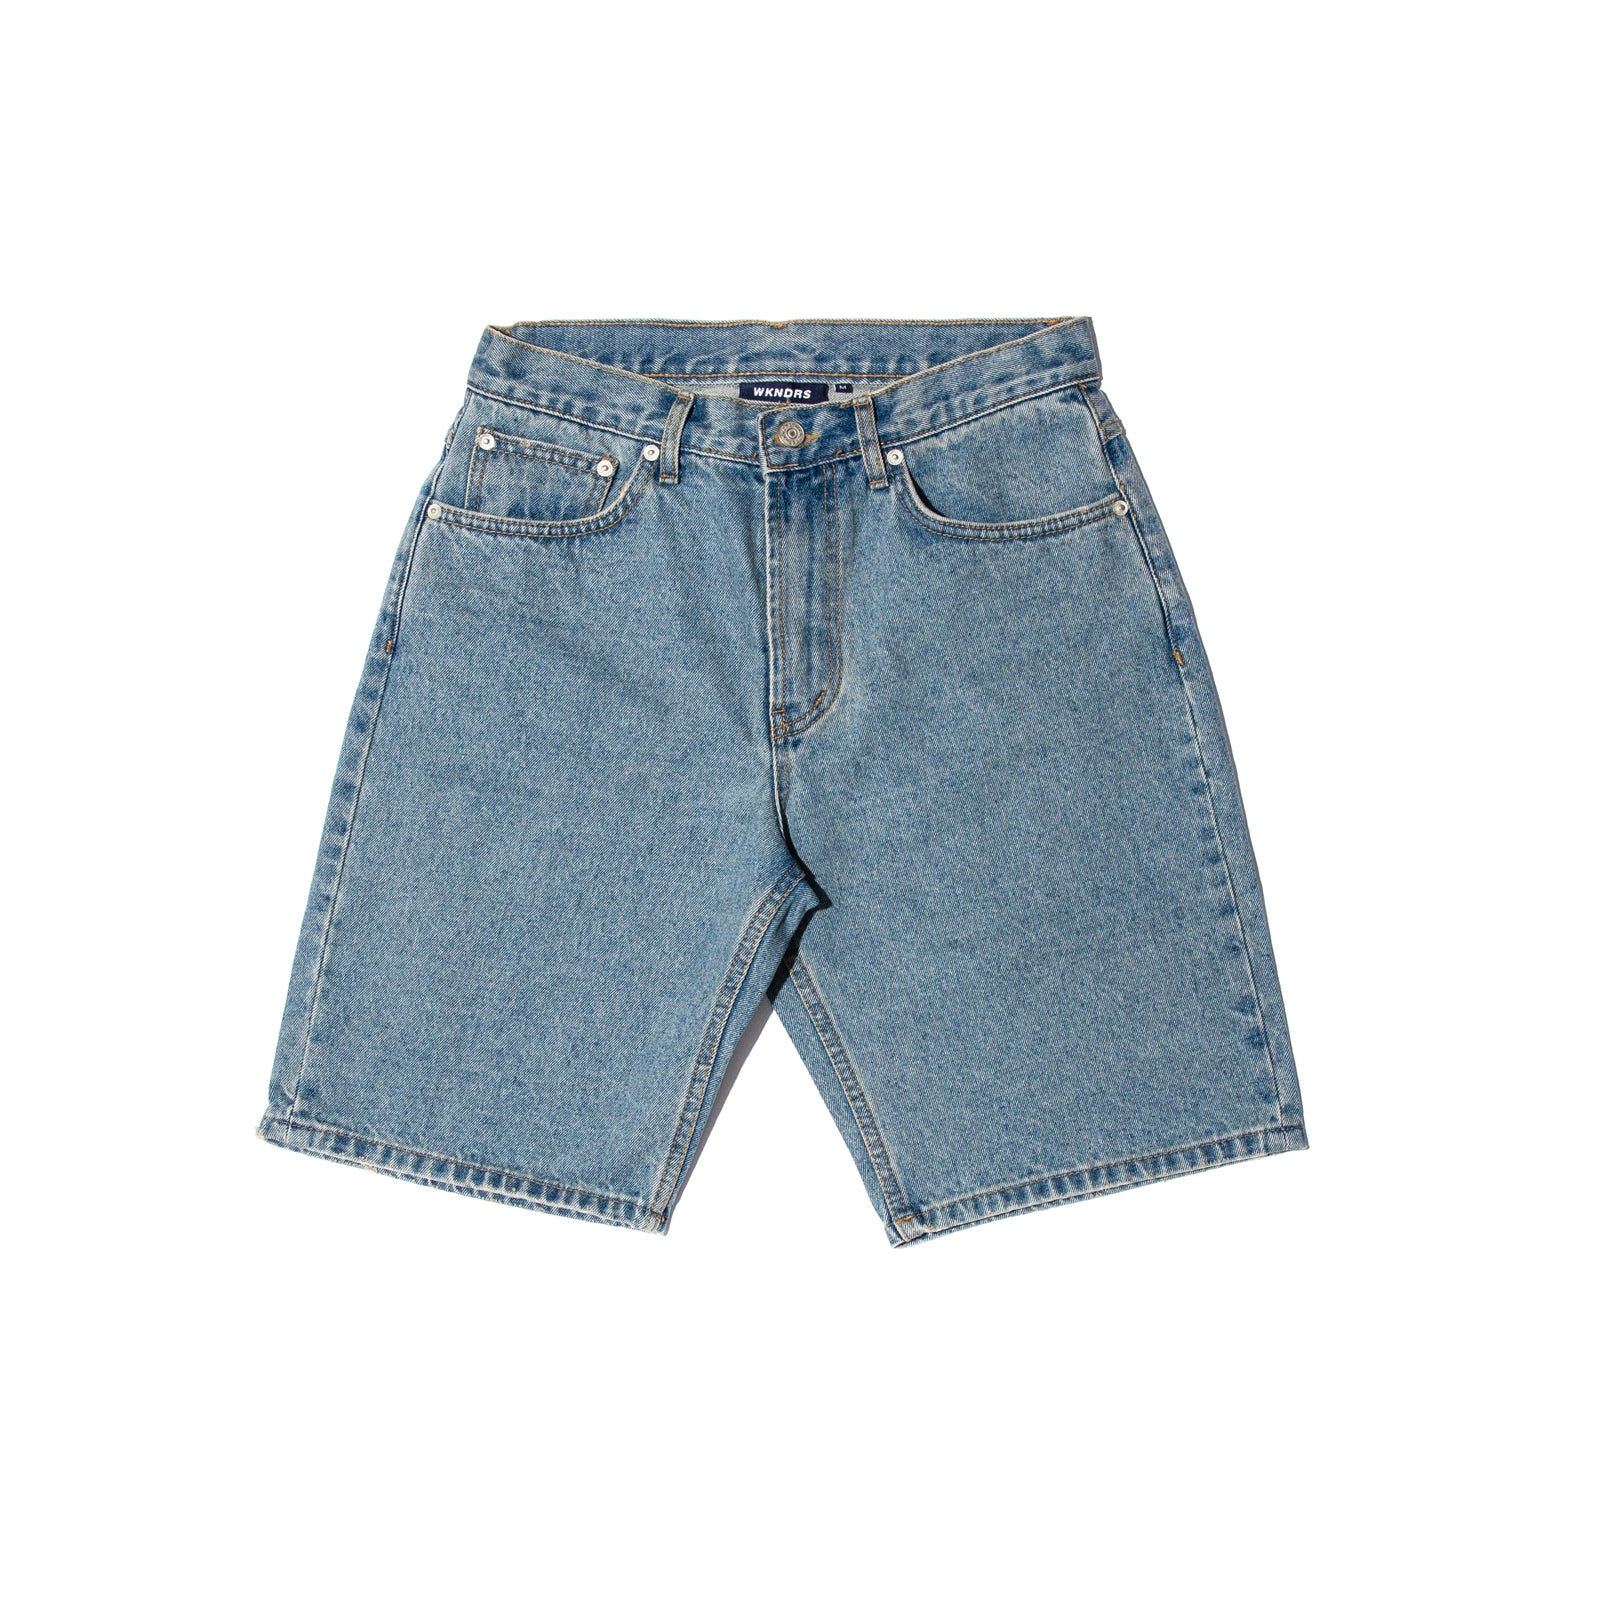 BASIC DENIM SHORTS (L.DENIM)